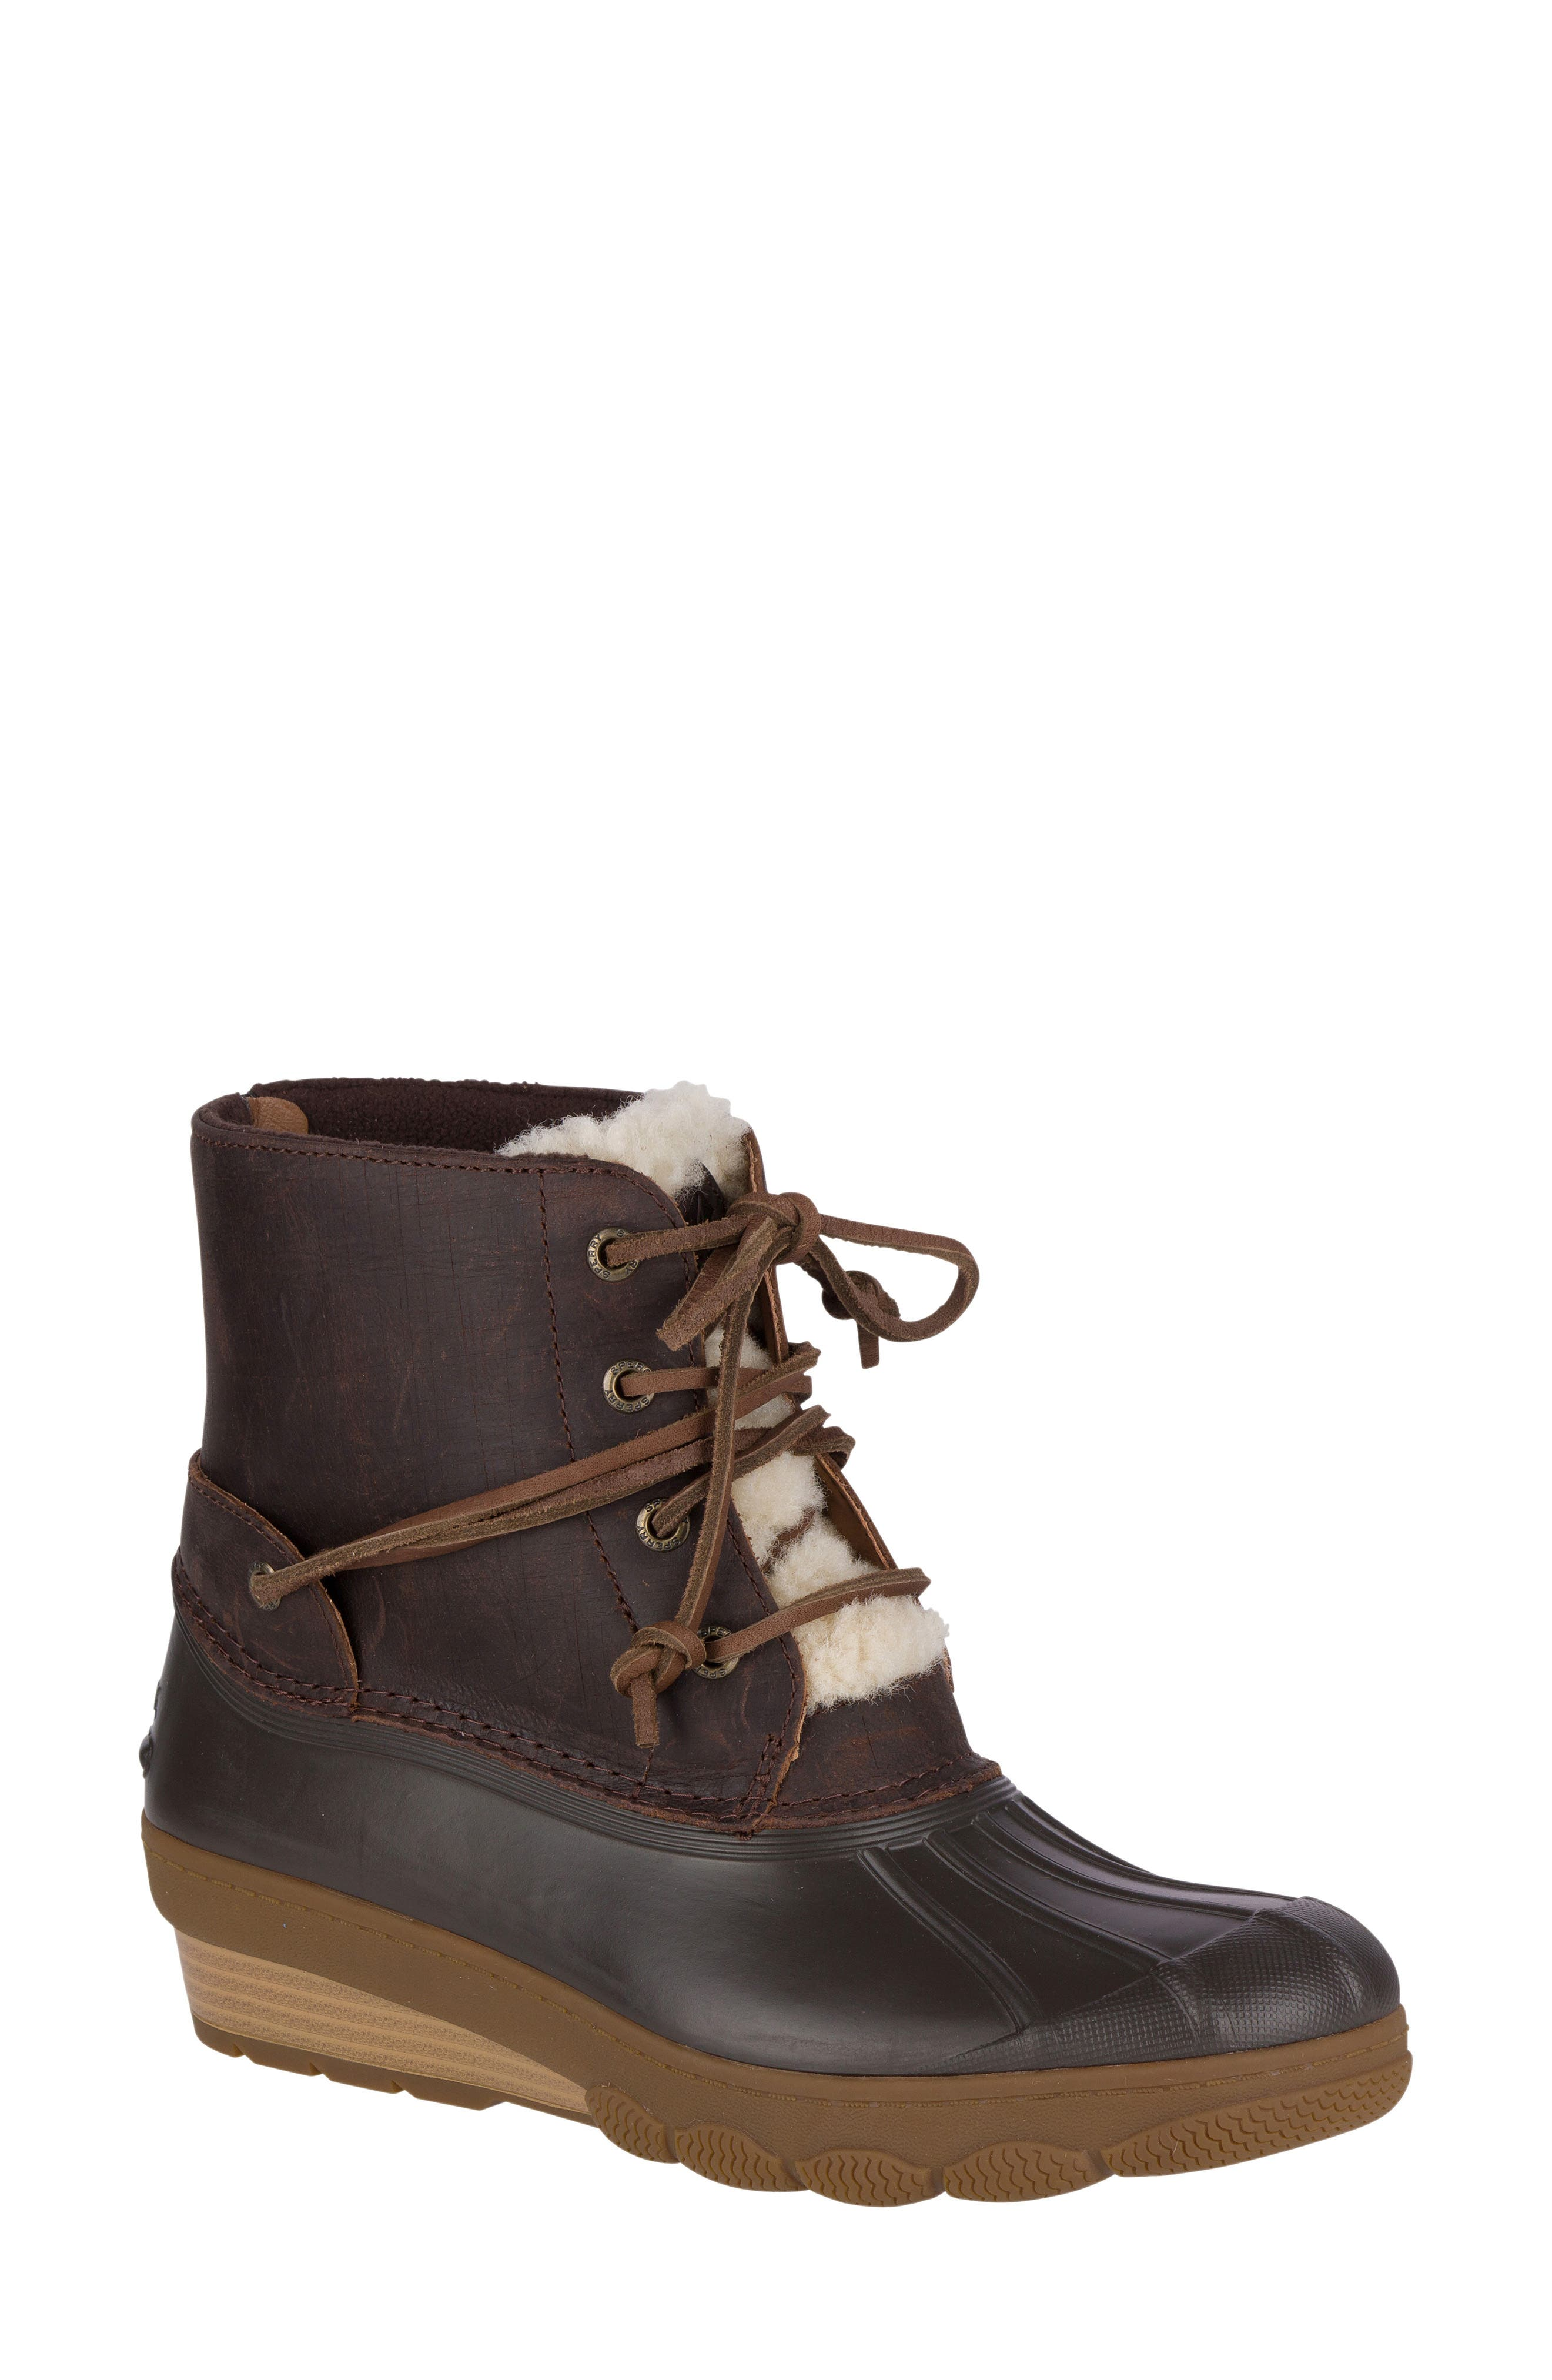 Sperry Saltwater Water Resistant Faux Shearling Duck Boot (Women)